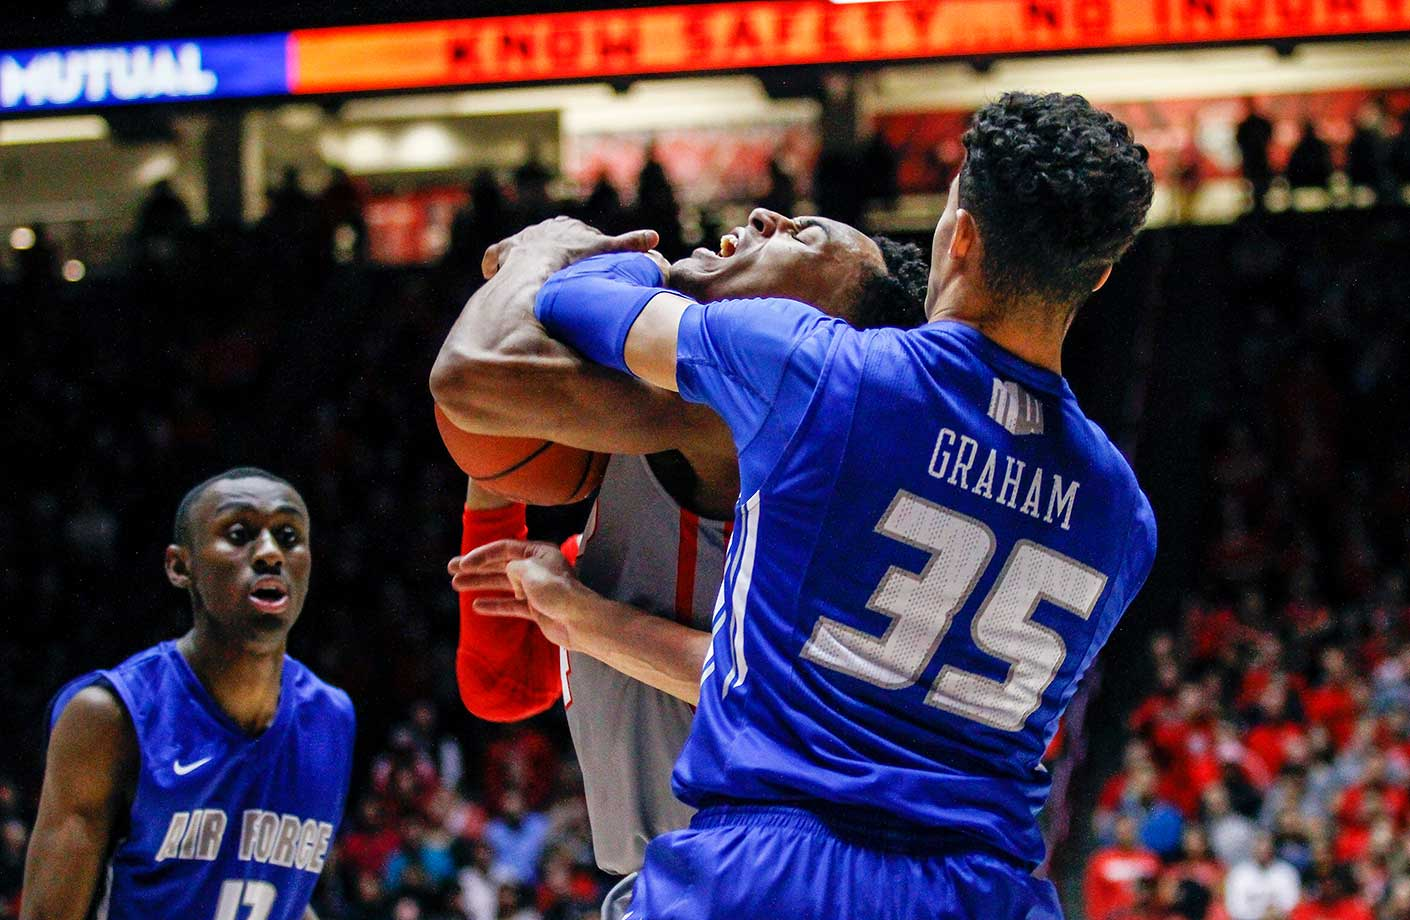 New Mexico's Elijah Brown is fouled by Air Force's Hayden Graham in Albuquerque. New Mexico routed Air Force 84-55.